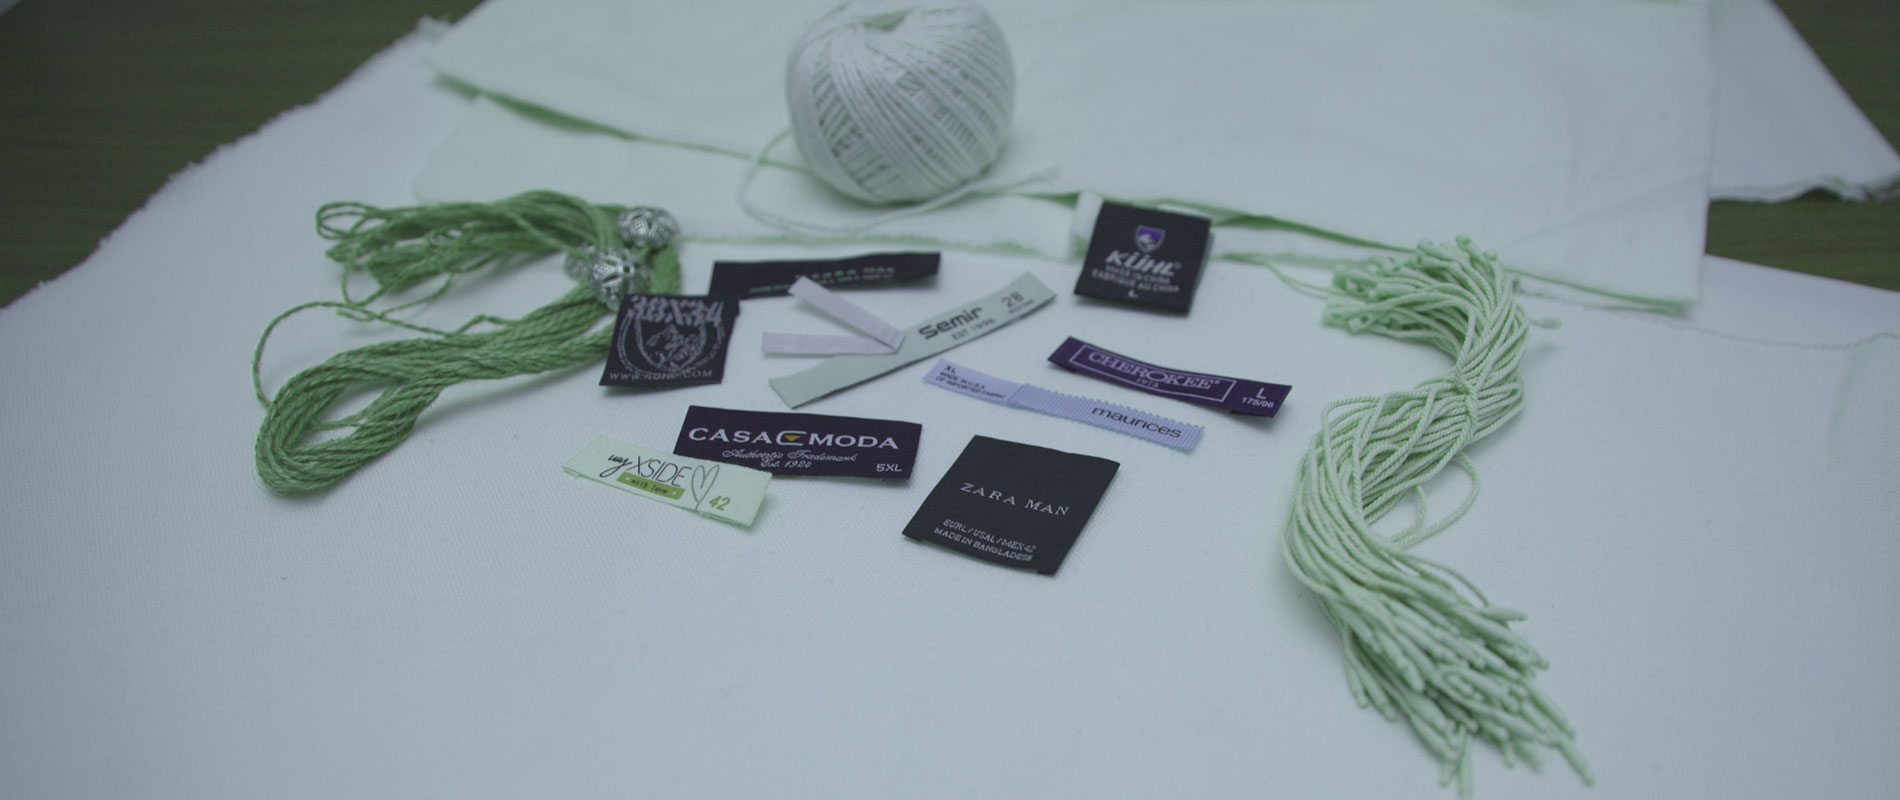 Custom Printed Labels & Hand Tags, Woven Labels.